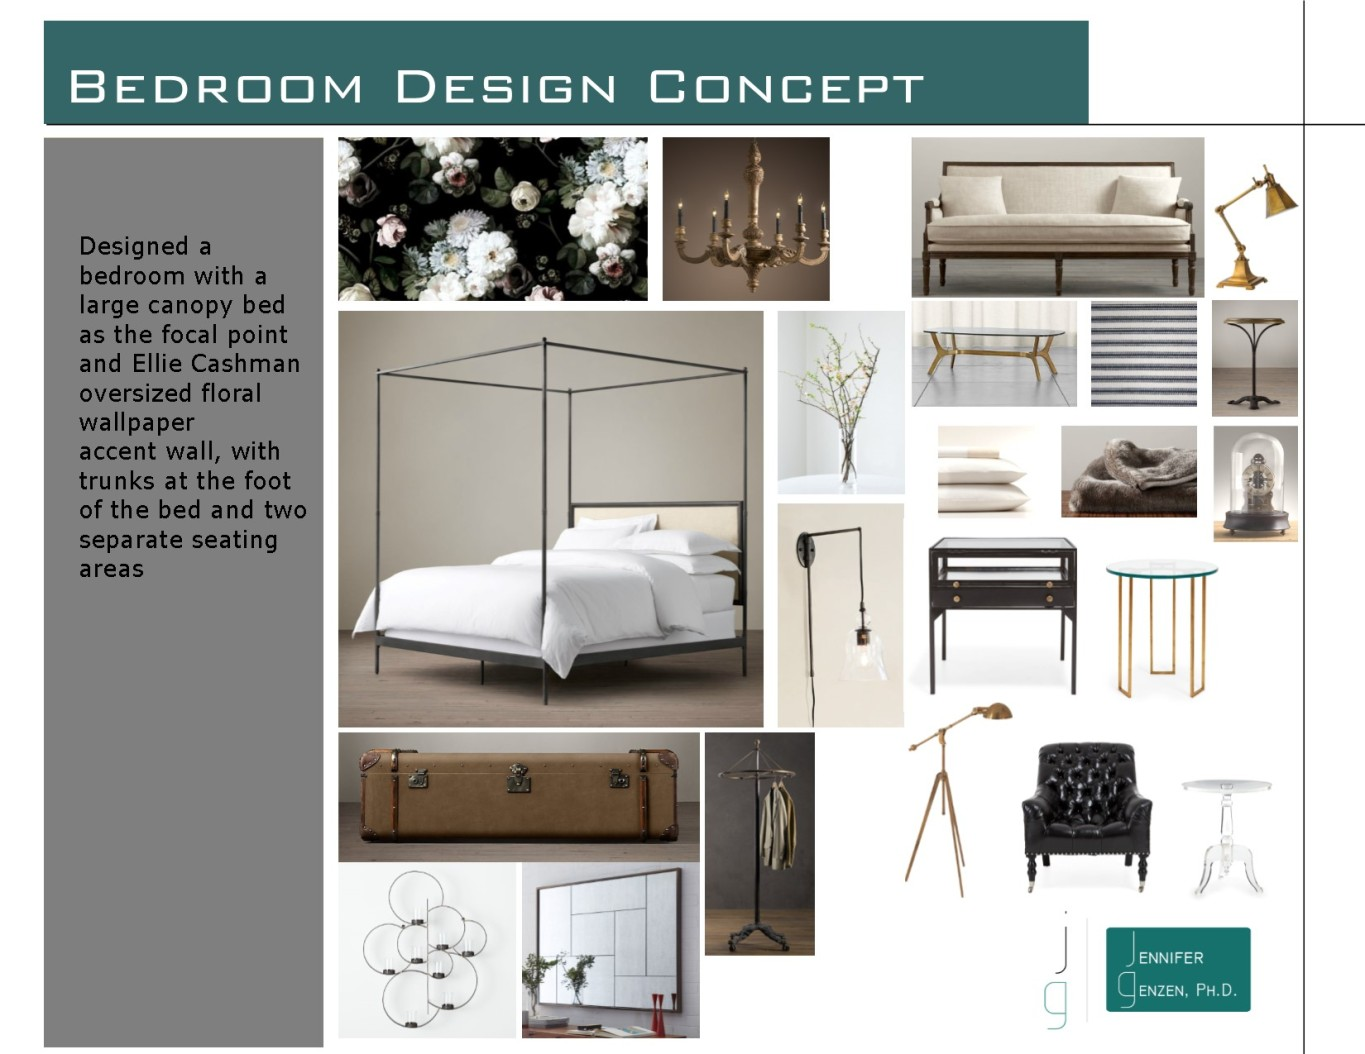 astounding bedroom design concept images simple design home - Bedroom Design Concepts